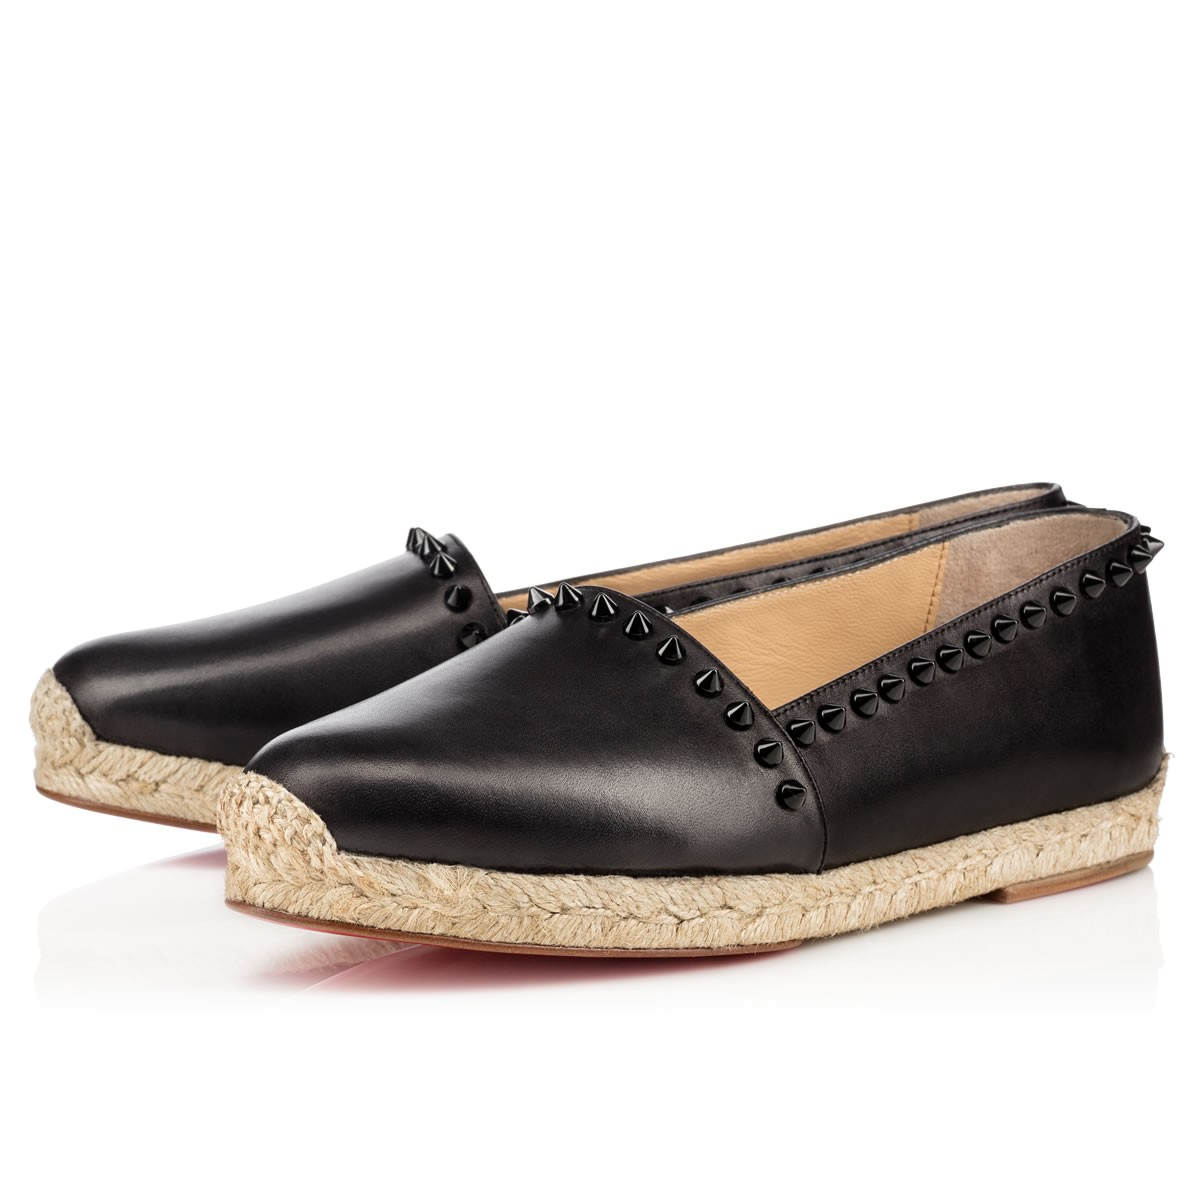 Ares Flat Black Leather - Women Shoes - Christian Louboutin